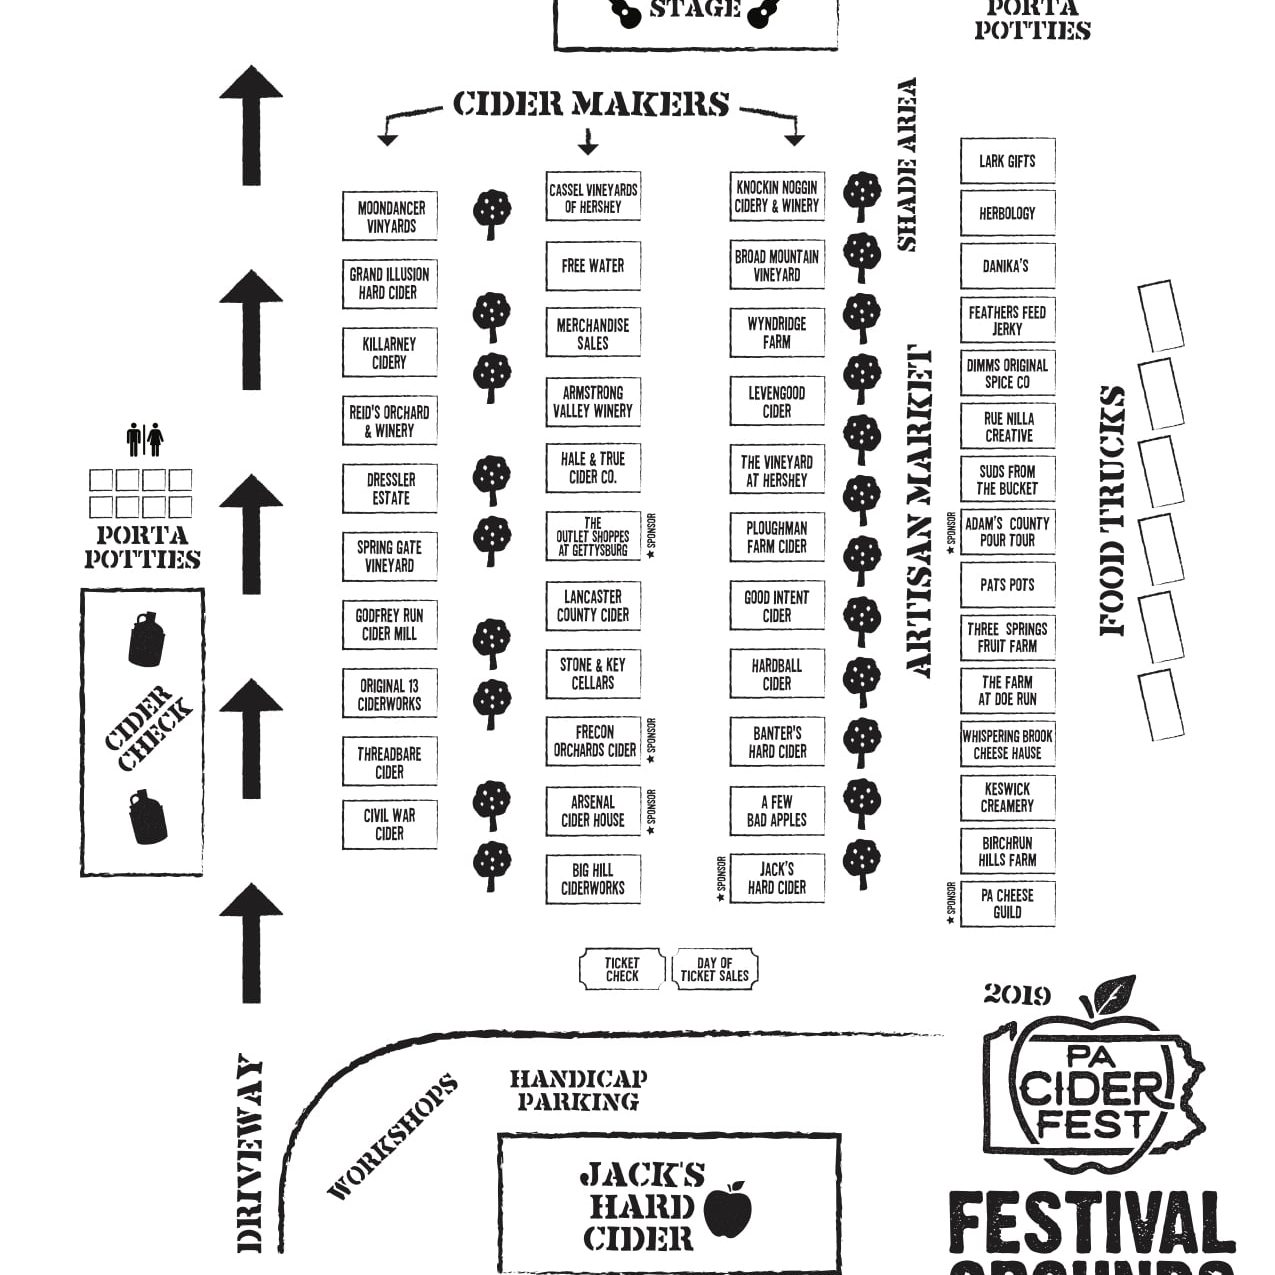 PA Cider Festival 2019 - Cider-Tasting in Gettysburg PA on gettysburg pennsylvania on us map, pennsylvania regions map, gettysburg manufacturing map, downtown gettysburg pa map, norhteast and southeast map, gettysburg trail map, winery map, gettysburg tourism map,